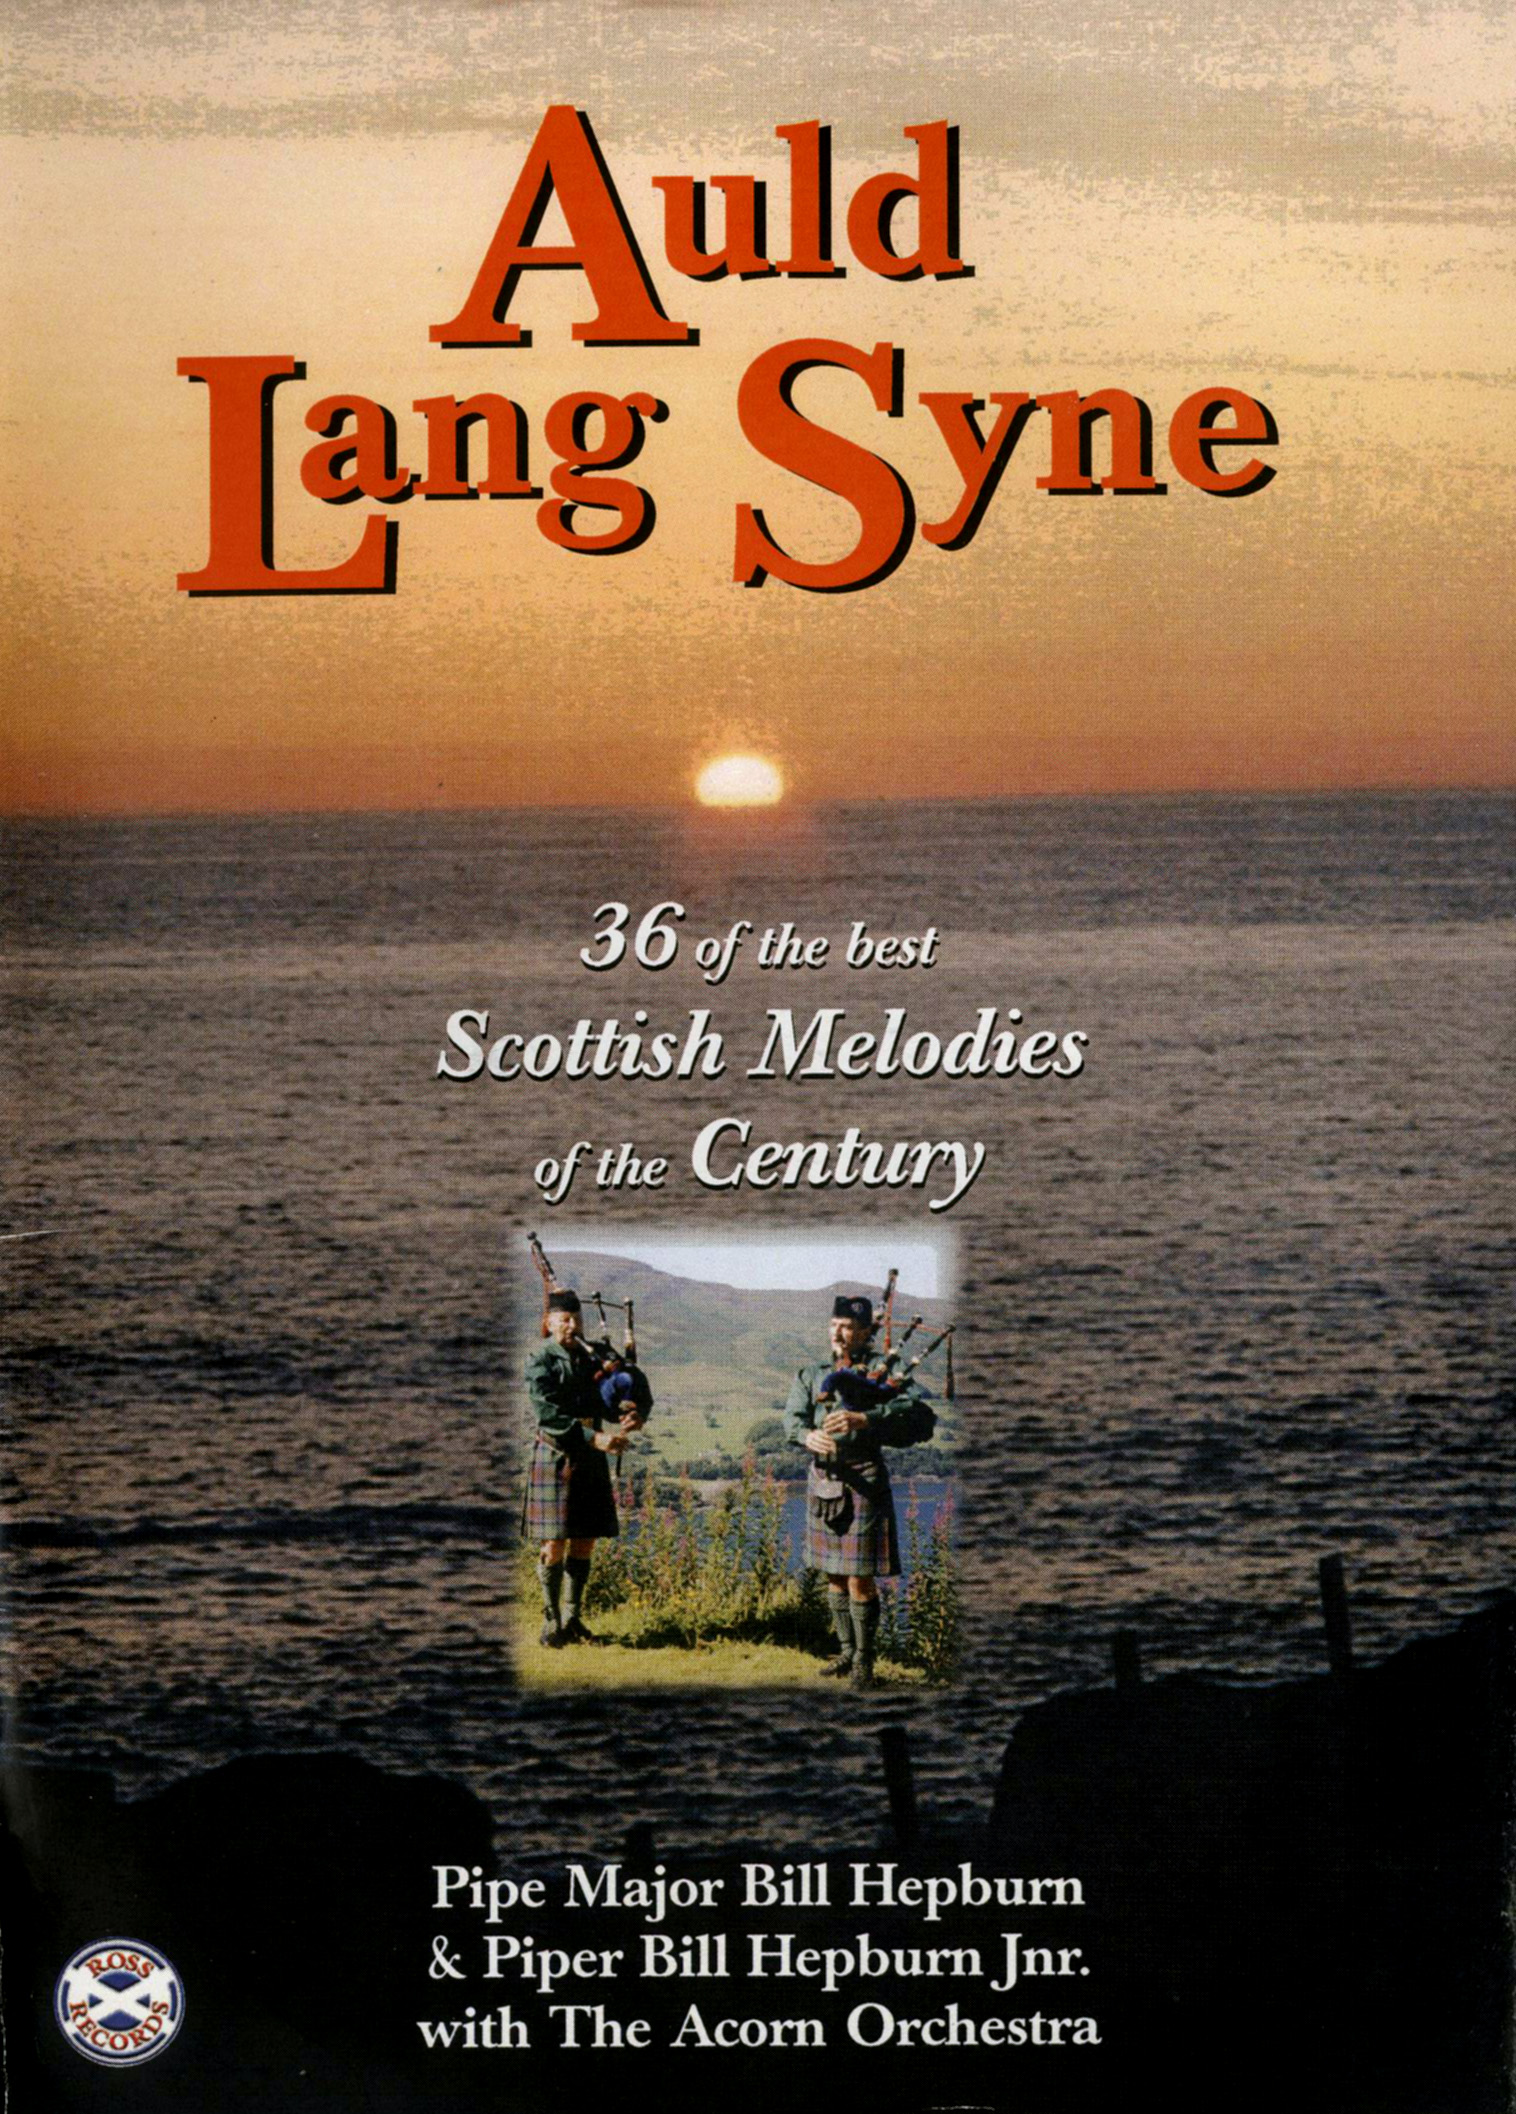 Auld Lang Syne - 36 of the Best Scottish Melodies of the Century